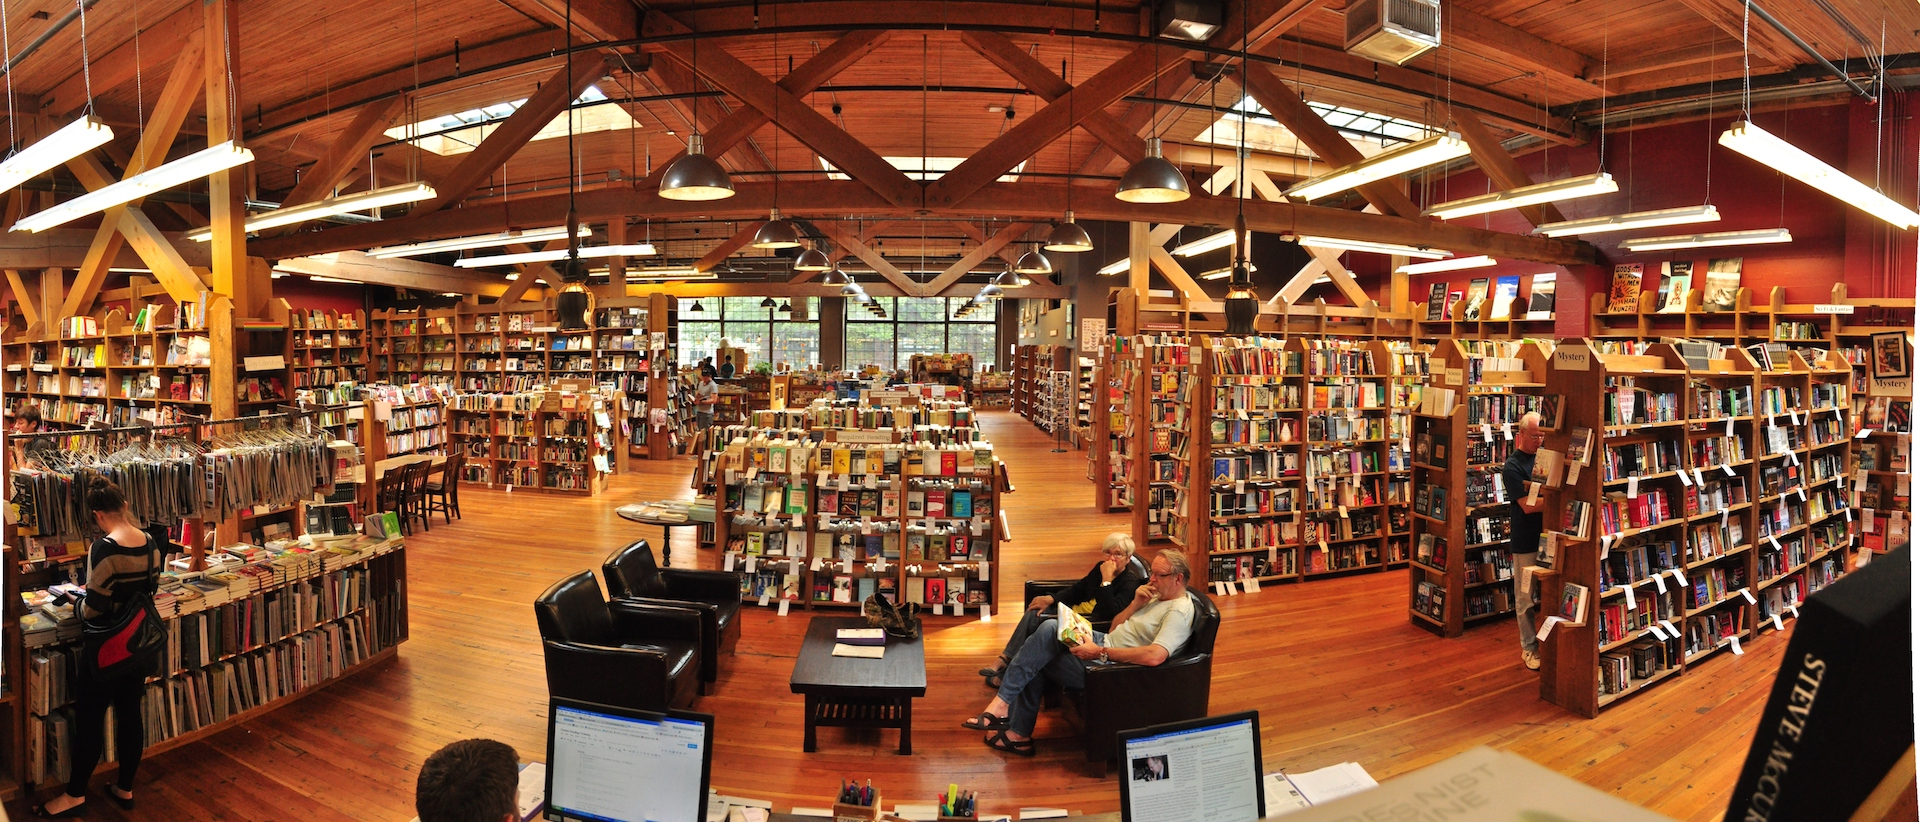 Elliot bay bookstore in Seattle